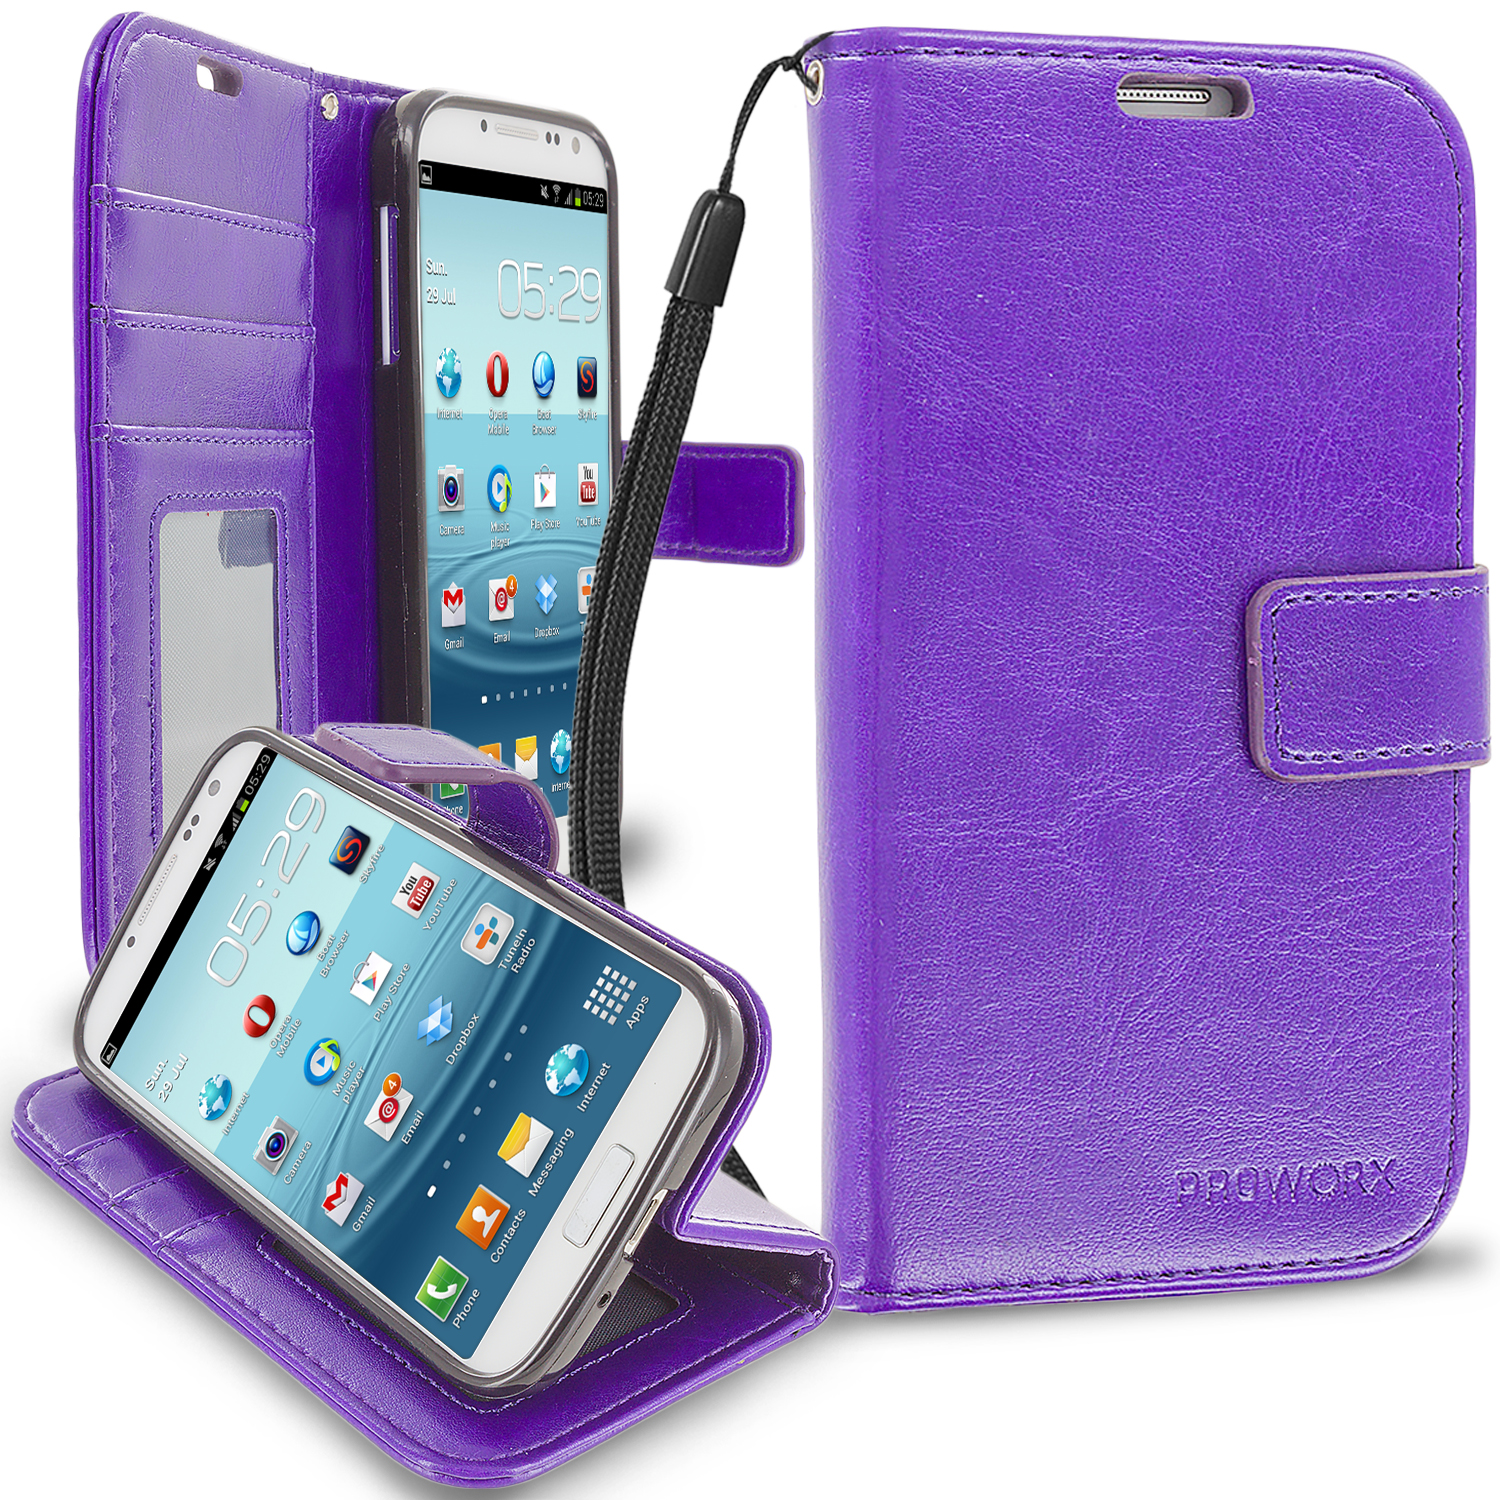 Samsung Galaxy S4 Purple ProWorx Wallet Case Luxury PU Leather Case Cover With Card Slots & Stand